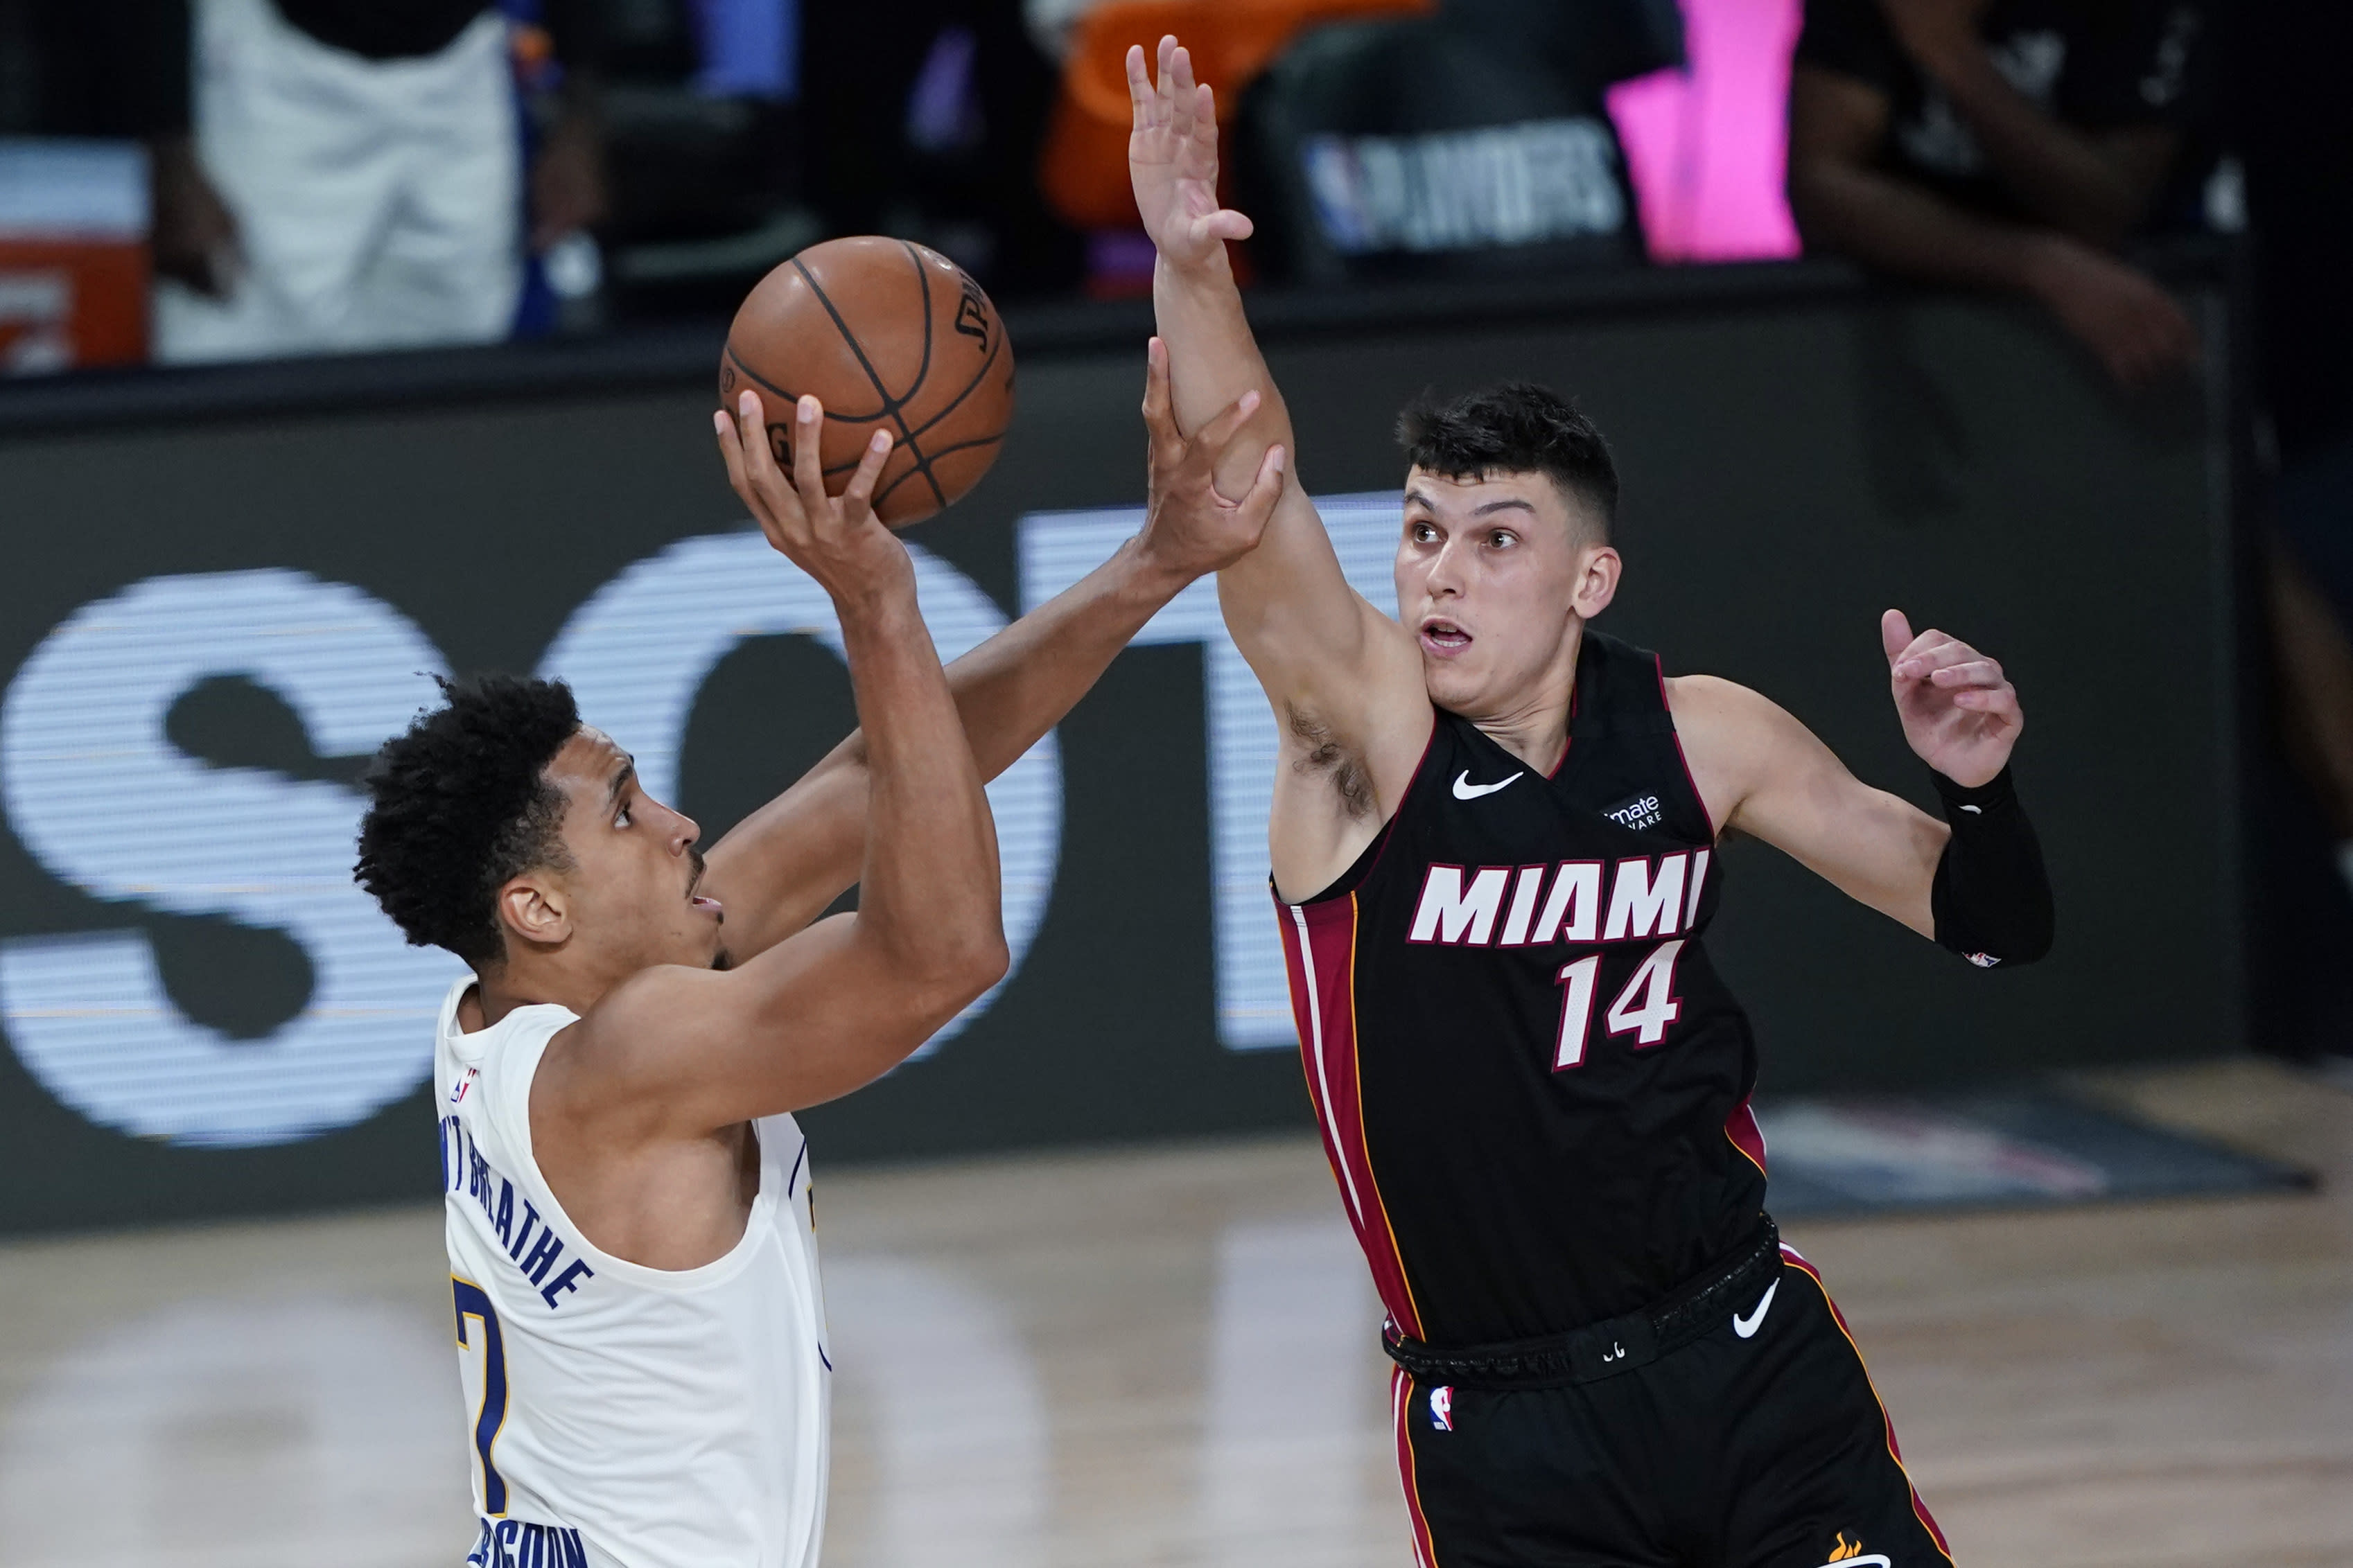 Indiana Pacers guard Malcolm Brogdon (7) shoots against Miami Heat guard Tyler Herro (14) during the second half of an NBA basketball first round playoff game, Saturday, Aug. 22, 2020, in Lake Buena Vista, Fla. (AP Photo/Ashley Landis, Pool)